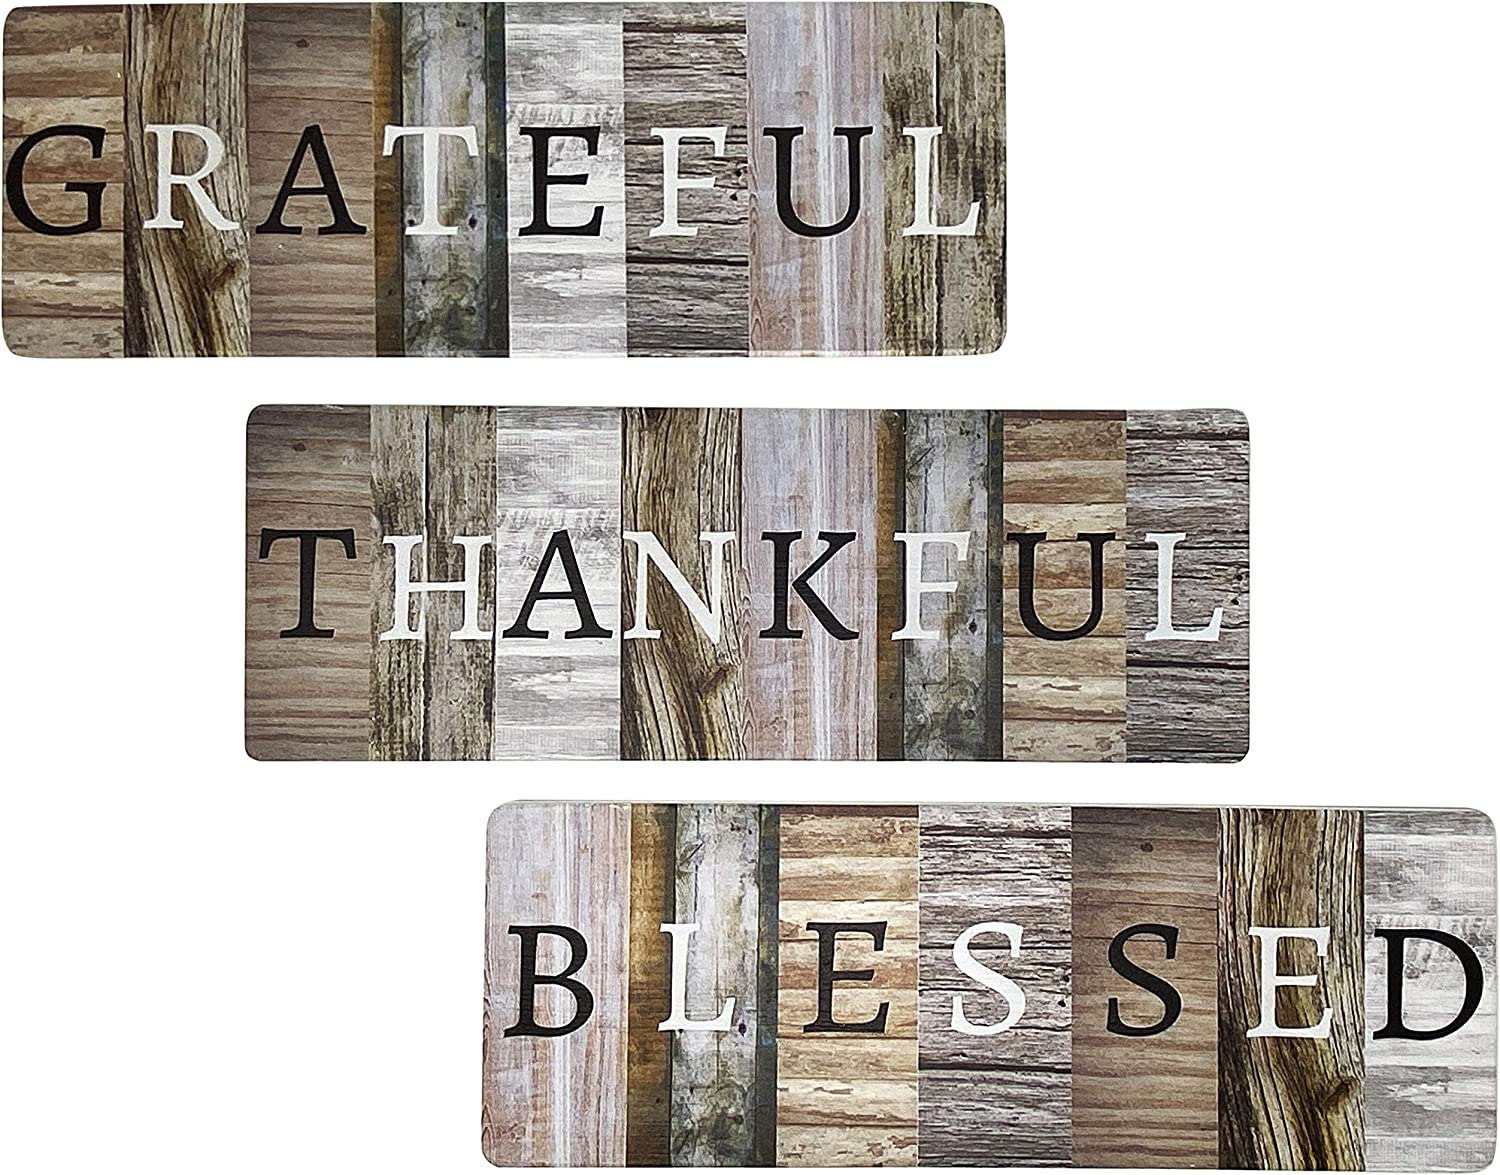 """Chiaravita Rustic Farmhouse Grateful Thankful Blessed Home Decor Sign - Solid Wood 17.1"""" x 6"""" Inspirational Wall Art Signs for Living Room, Dining Room, Kitchen, Bedroom, Bathroom and Home"""